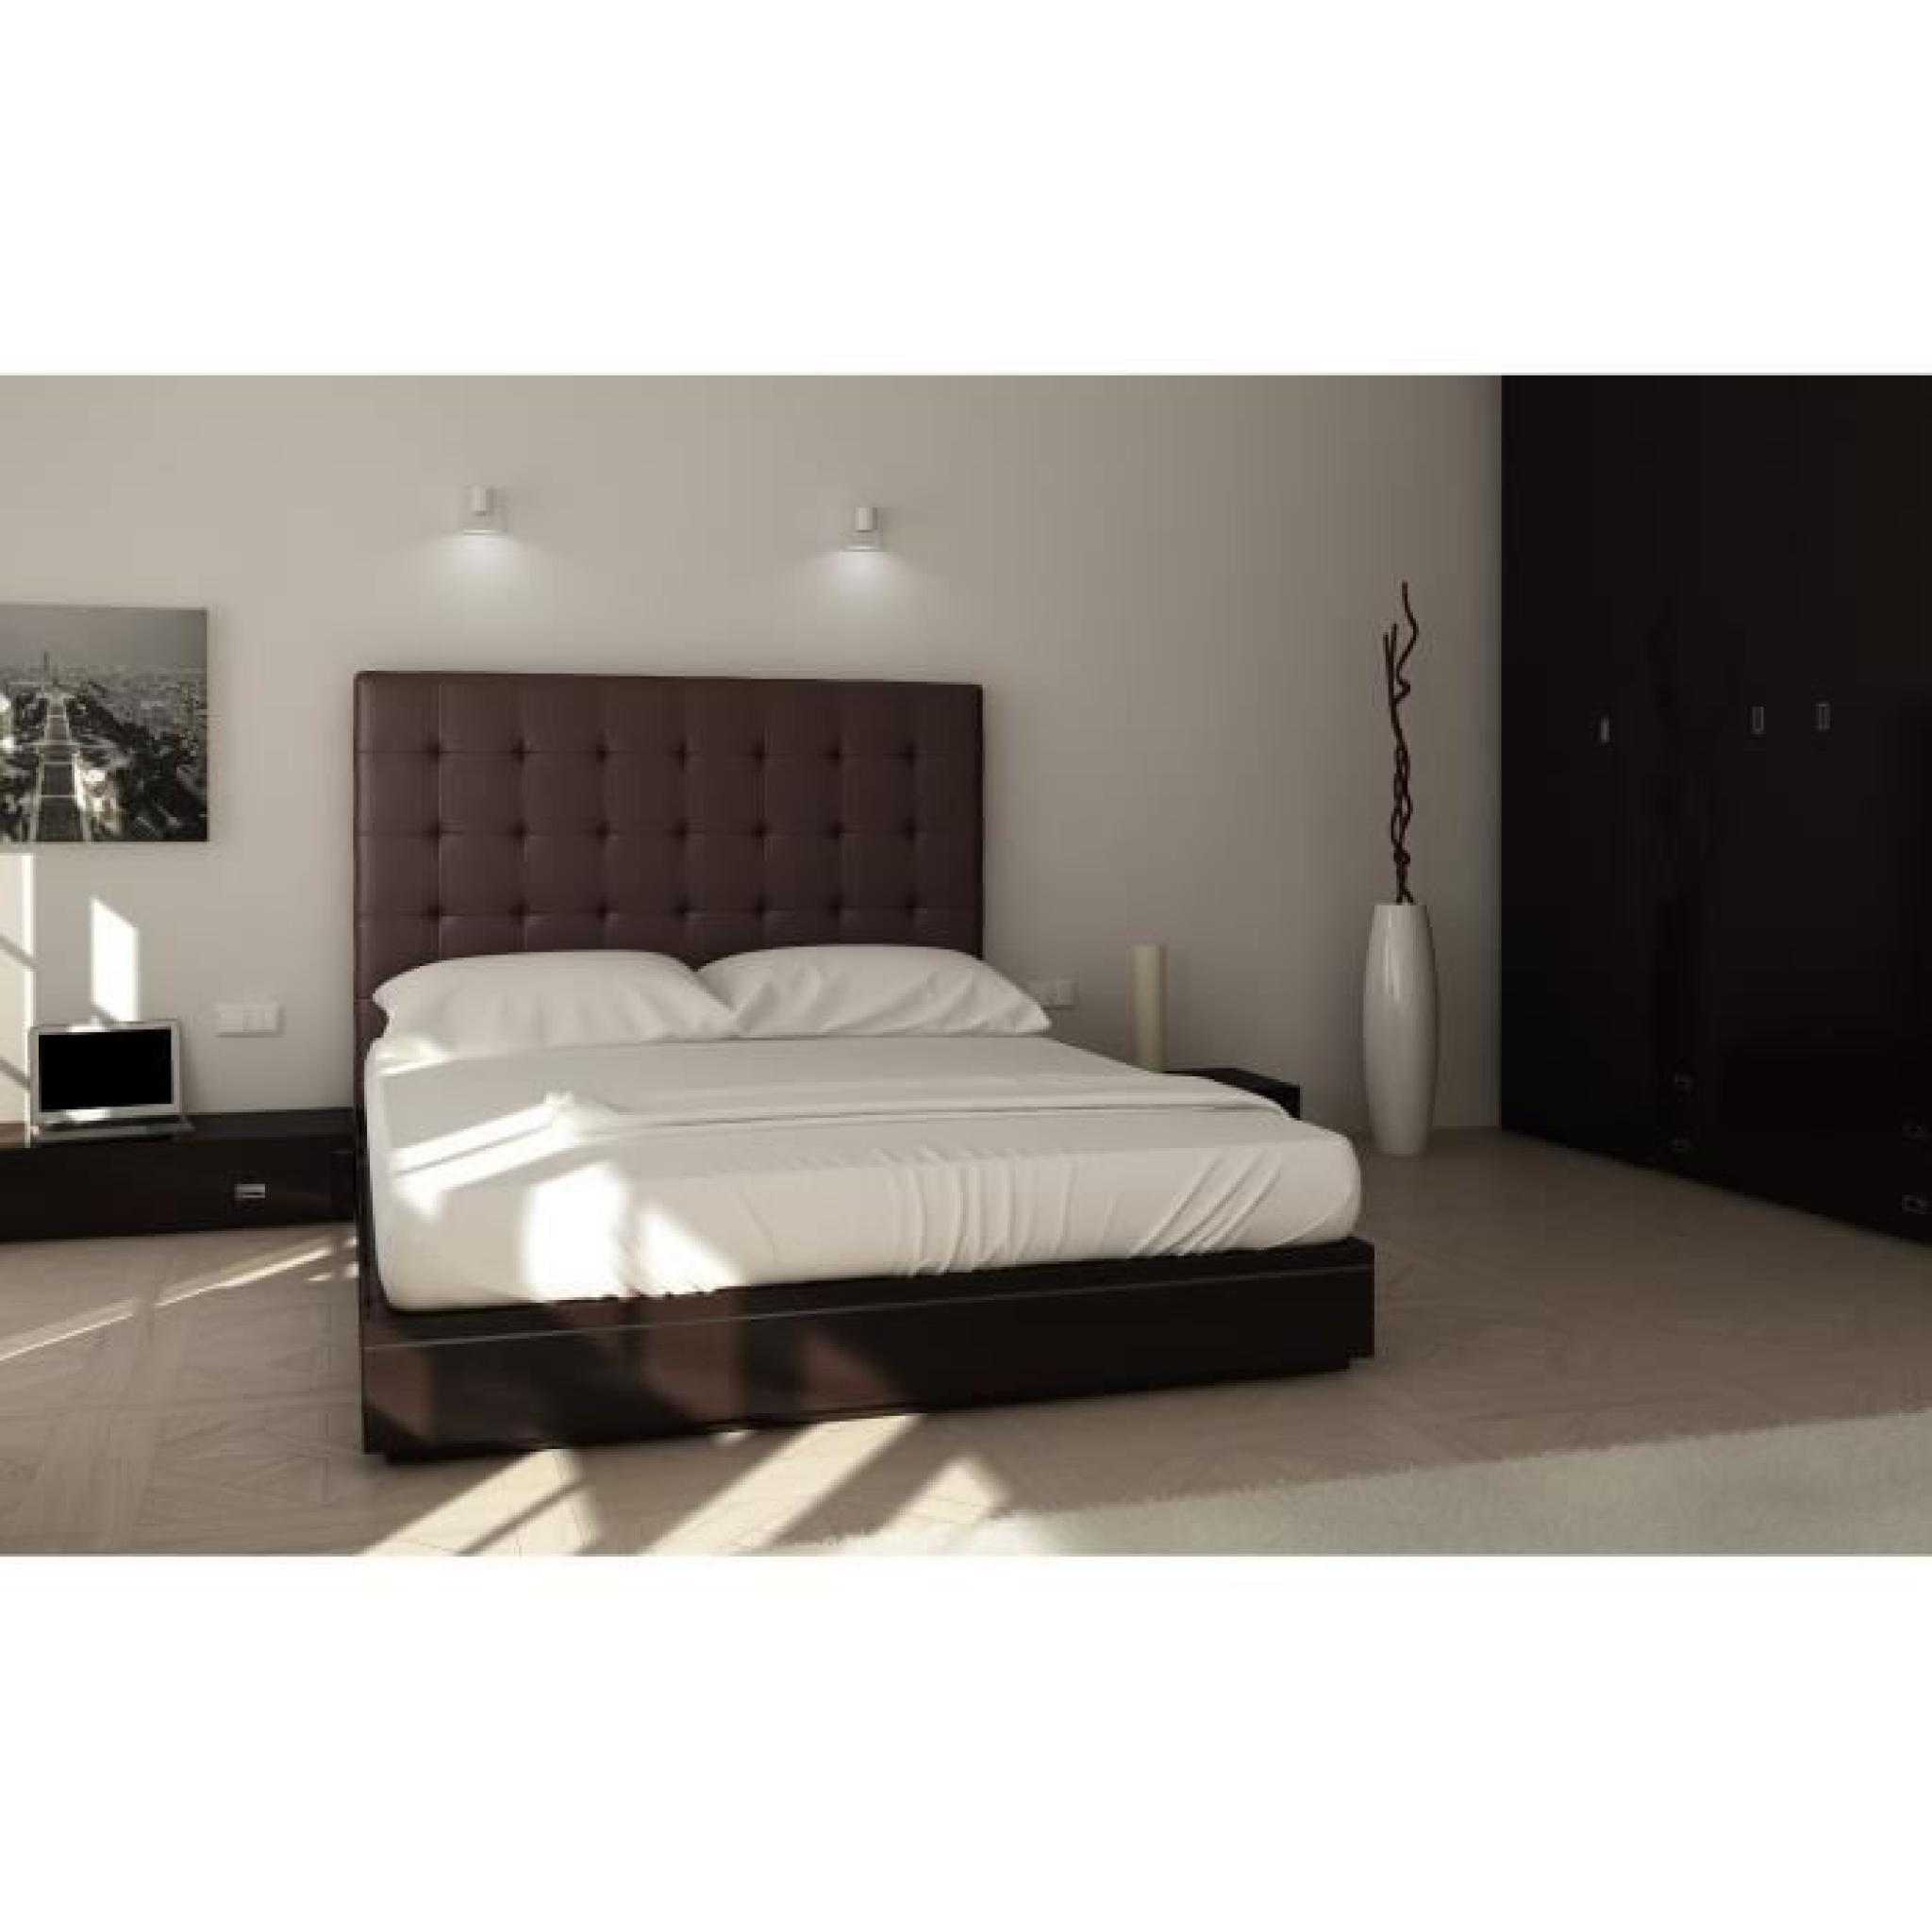 tete de lit pas cher but id e inspirante pour la conception de la maison. Black Bedroom Furniture Sets. Home Design Ideas